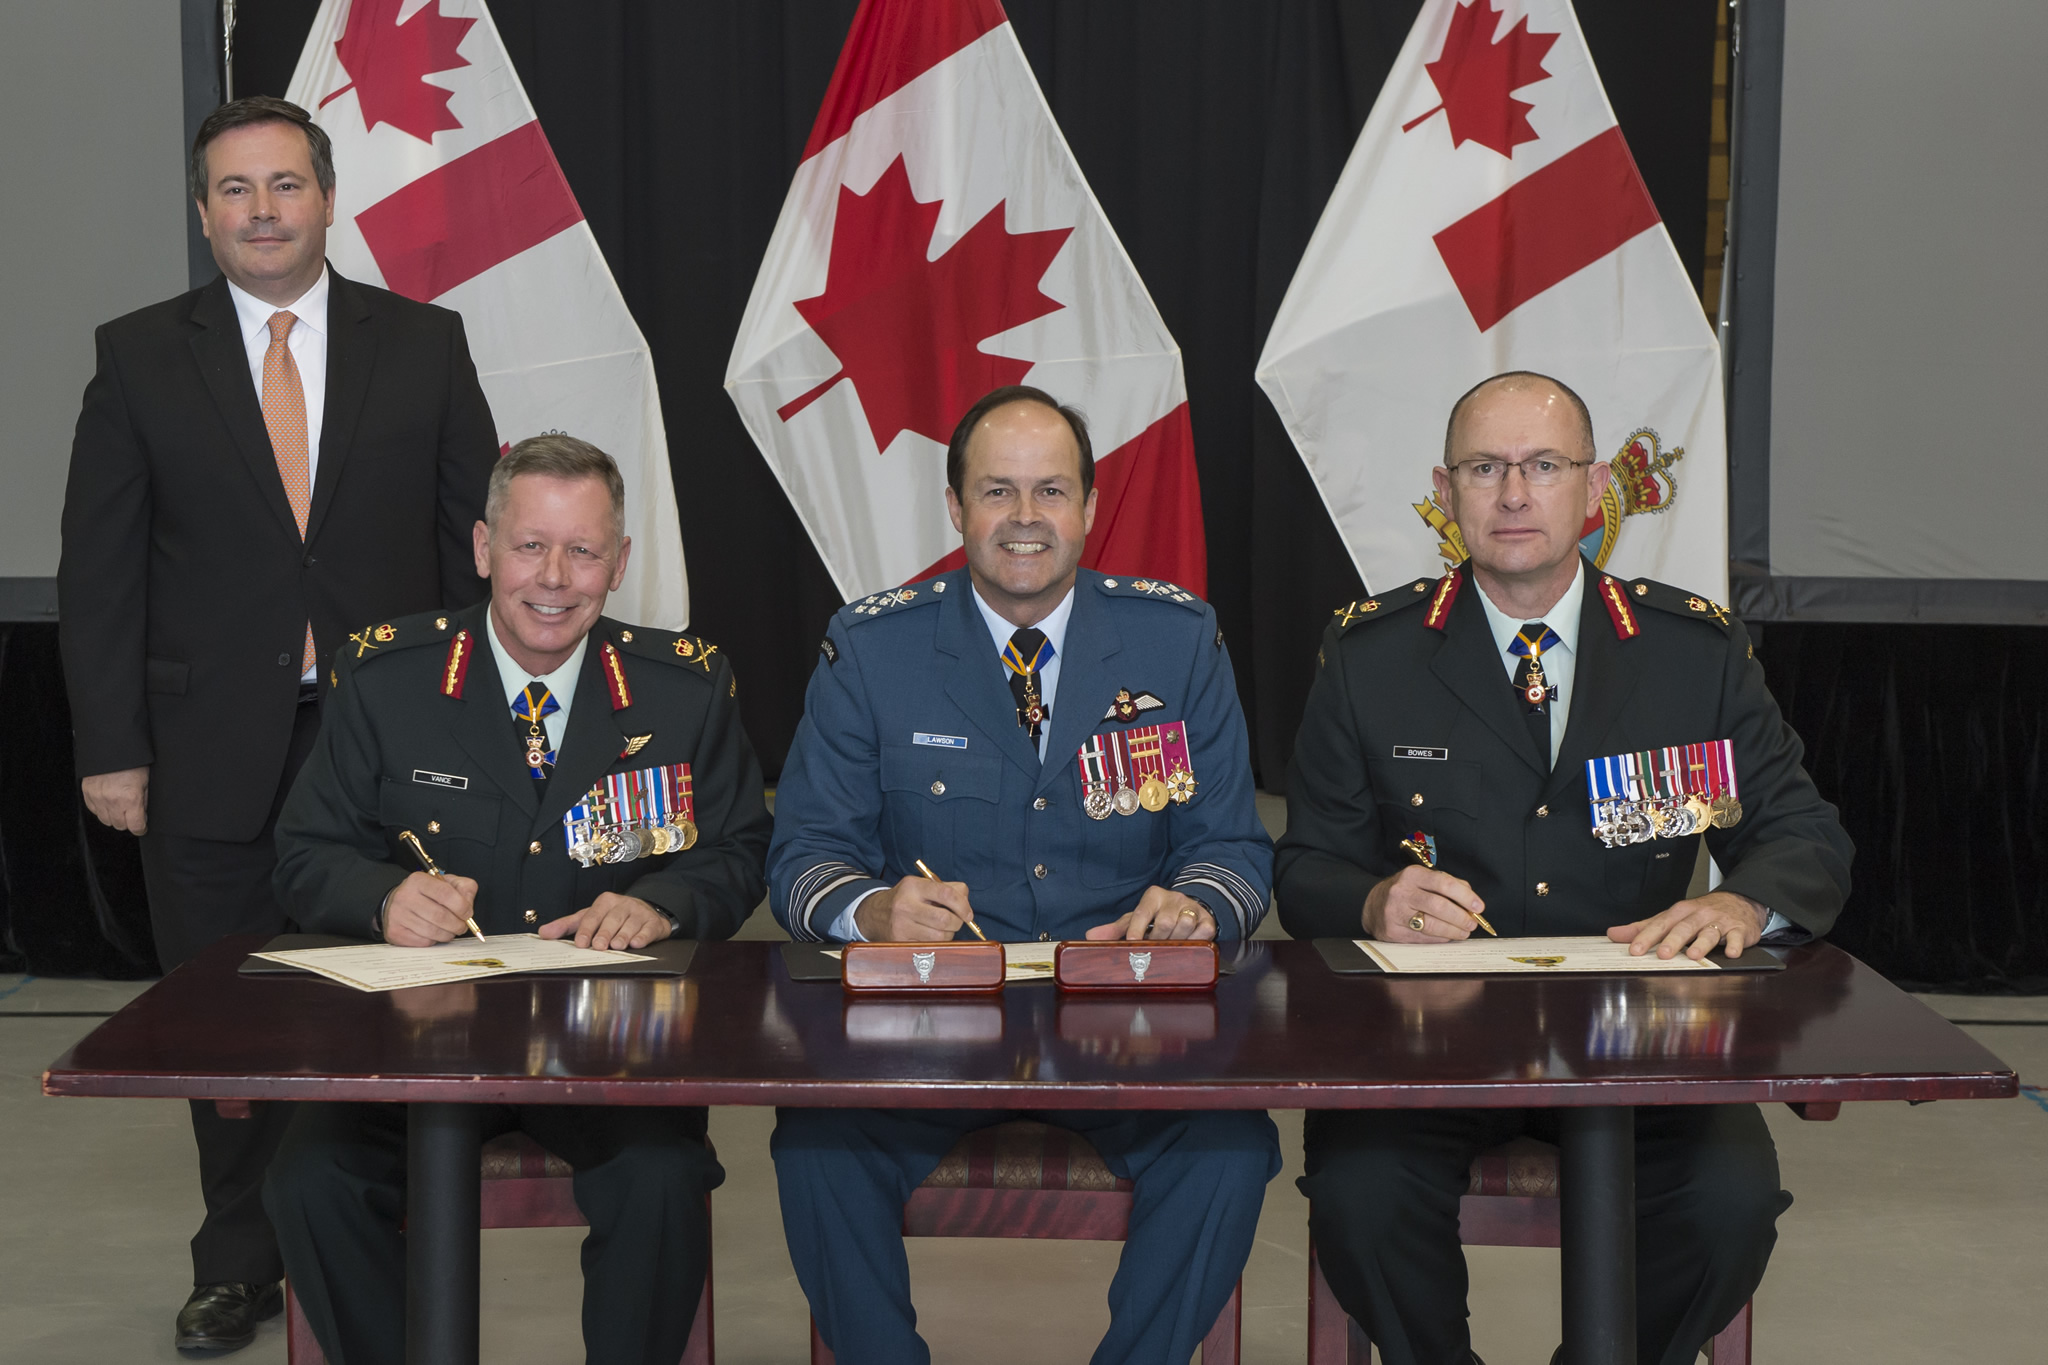 Three generals sign documents at a table while a man stands behind them